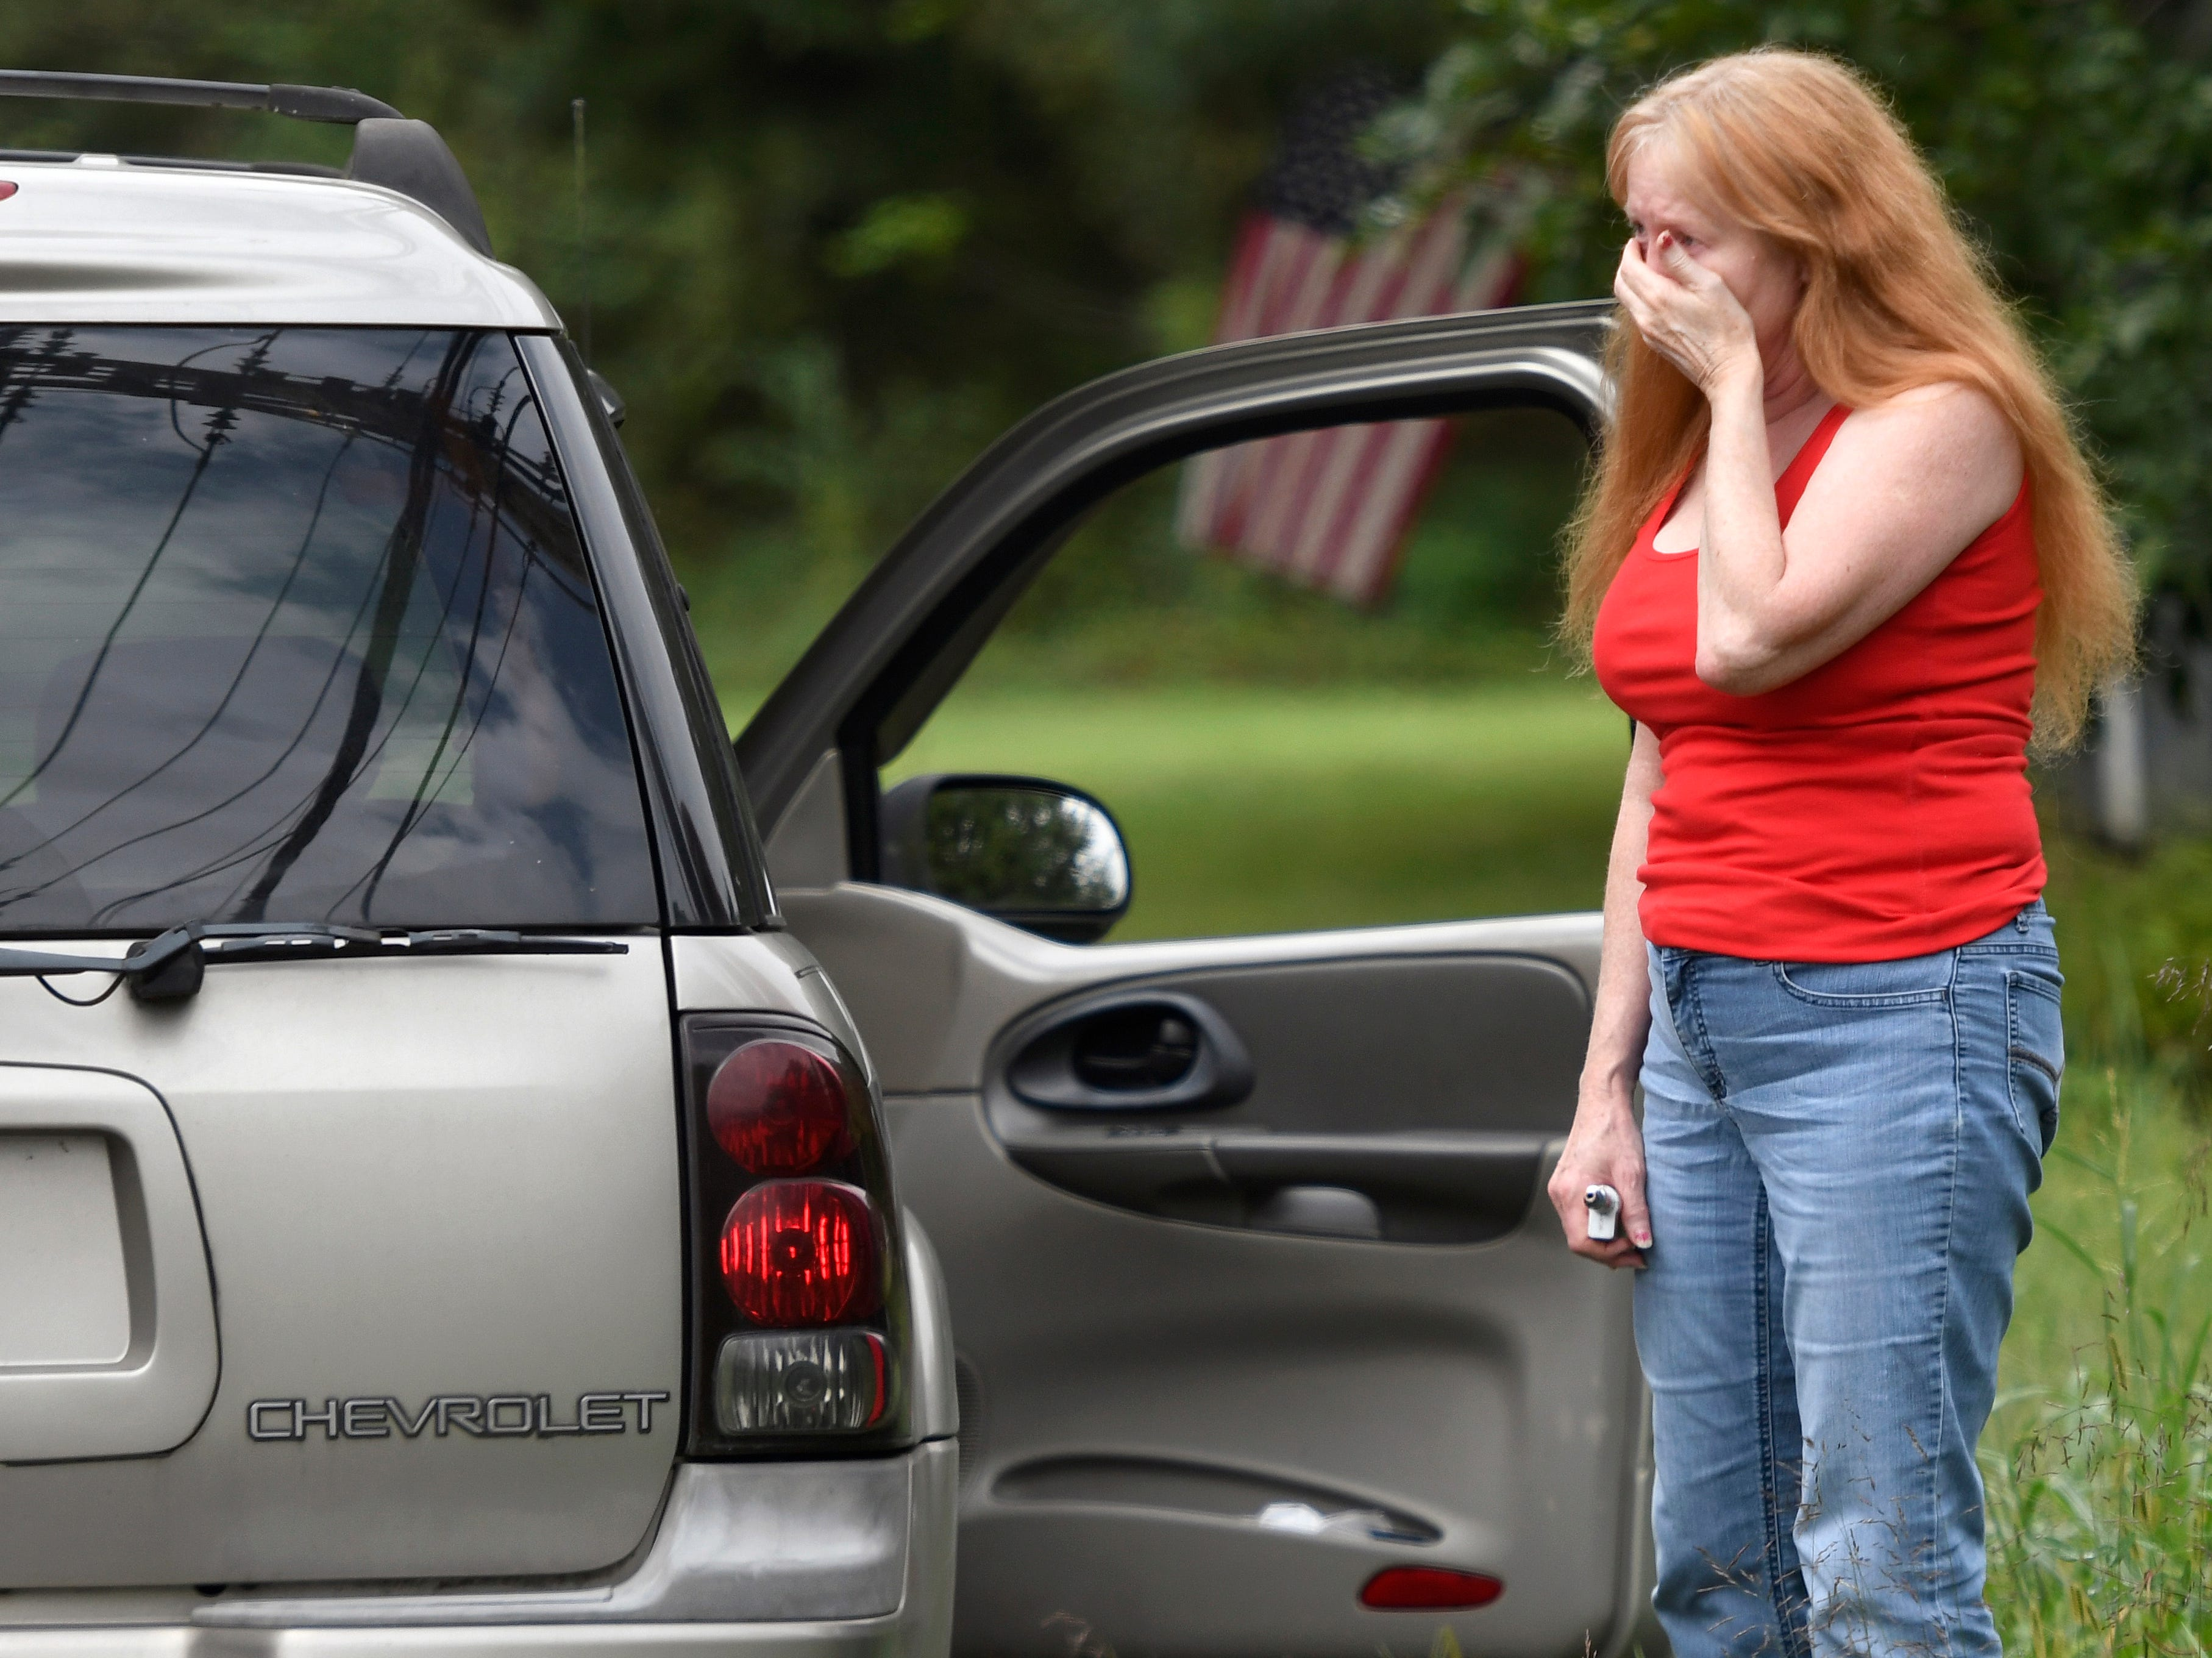 Shirley Pollack of Perryville, Md., reacts to what authorities called a shooting with multiple victims on Thursday, Sept. 20, 2018.